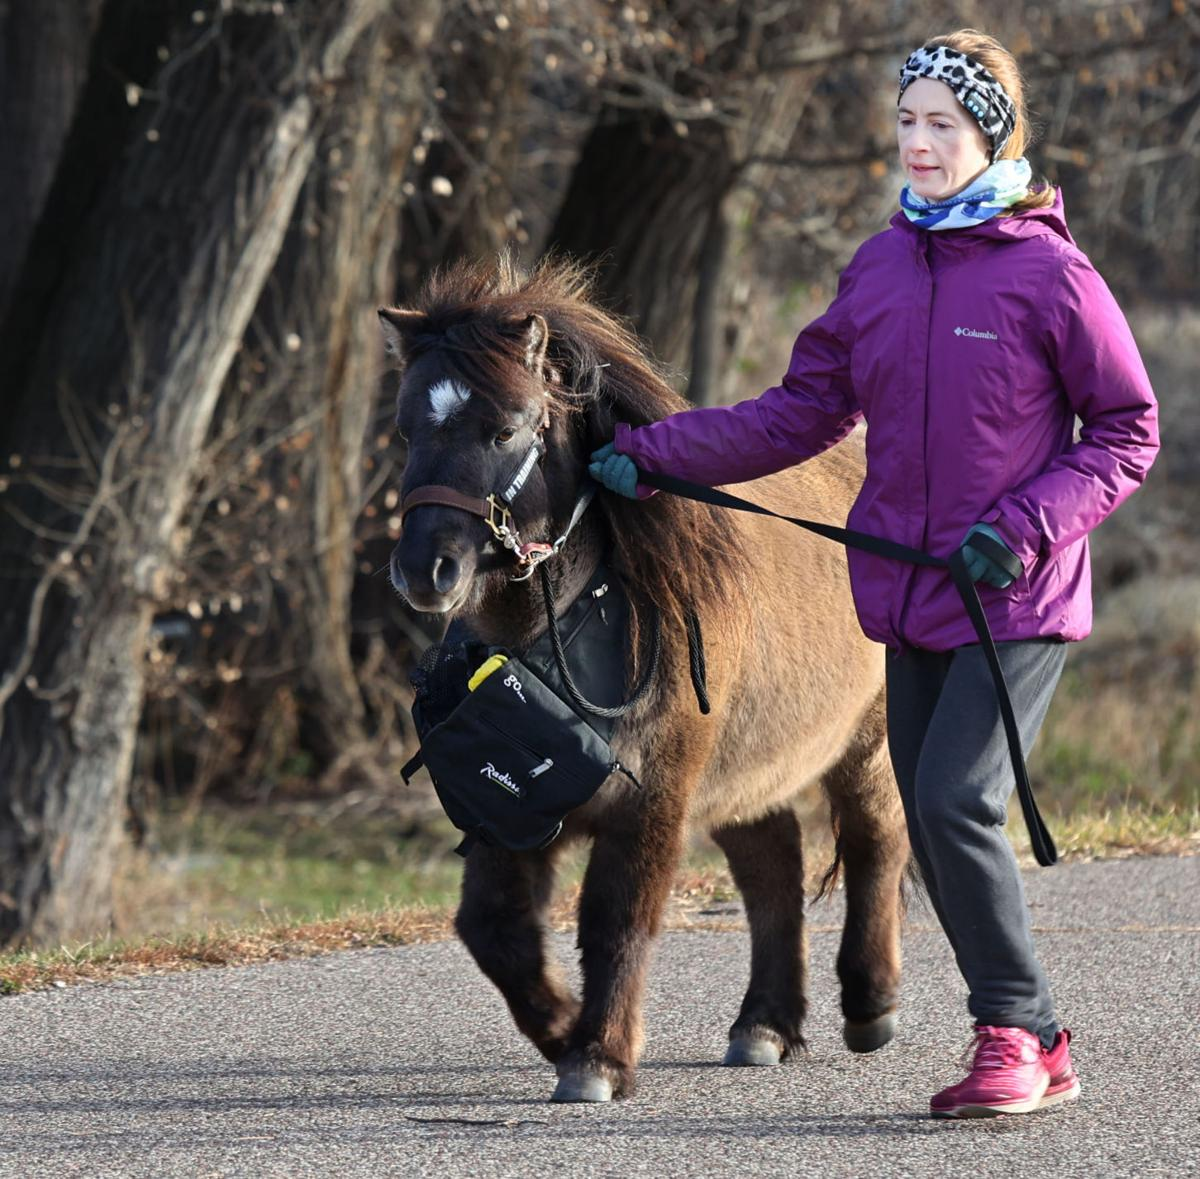 Therapy Horse